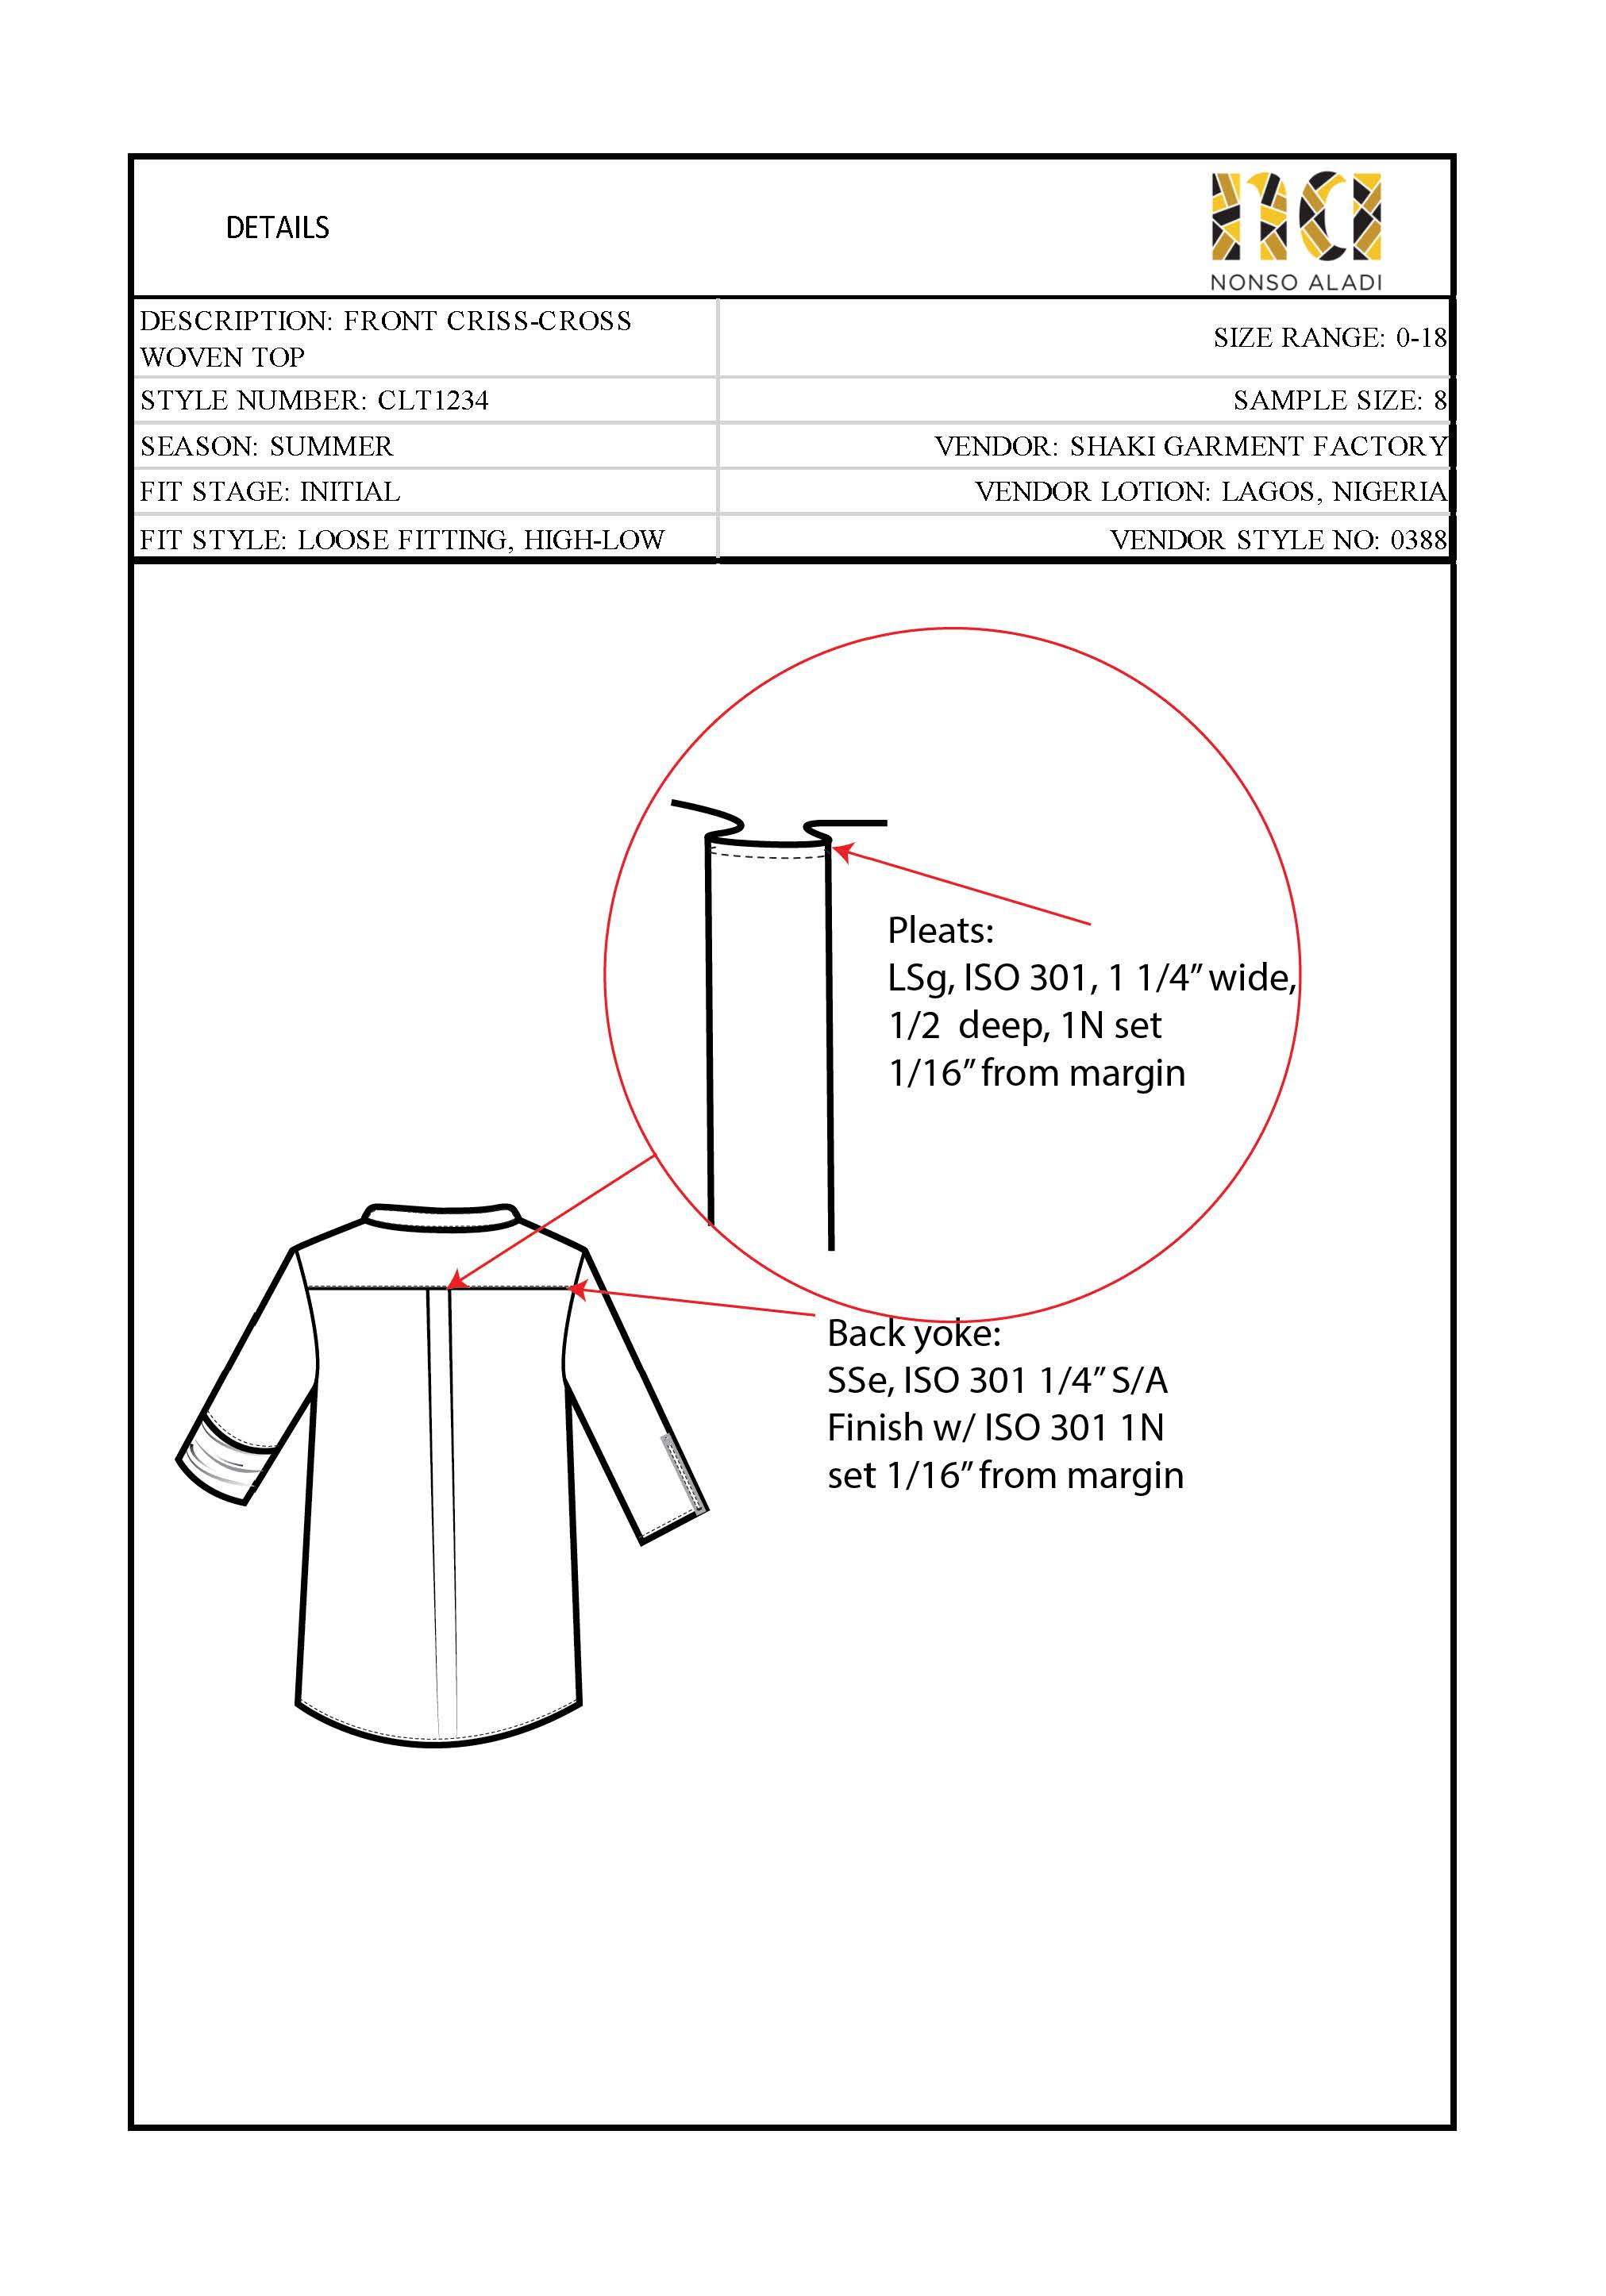 Blouse page_Page_02.jpg